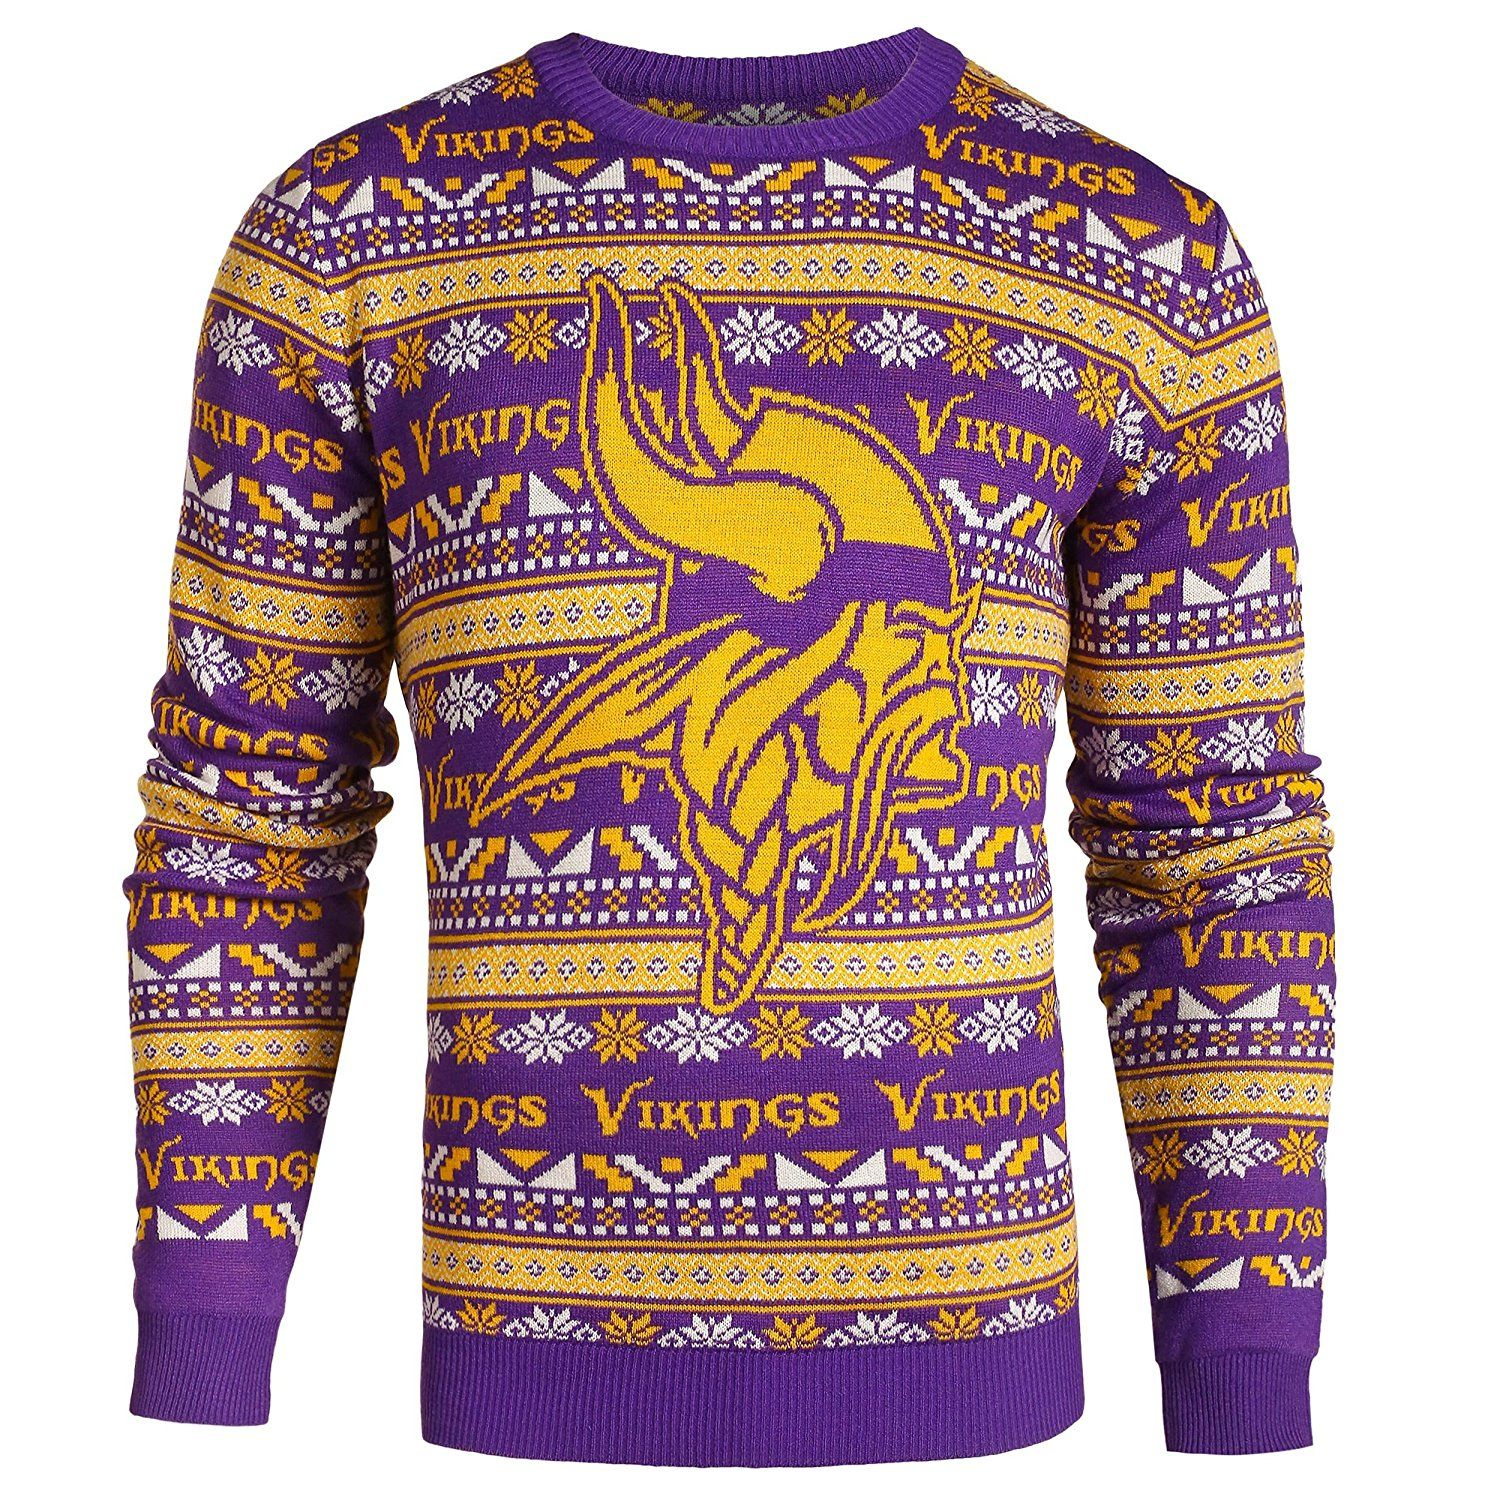 Ugly Christmas Sweaters 2020 Viking Pin on NFL Teams Ugly Christmas Sweaters